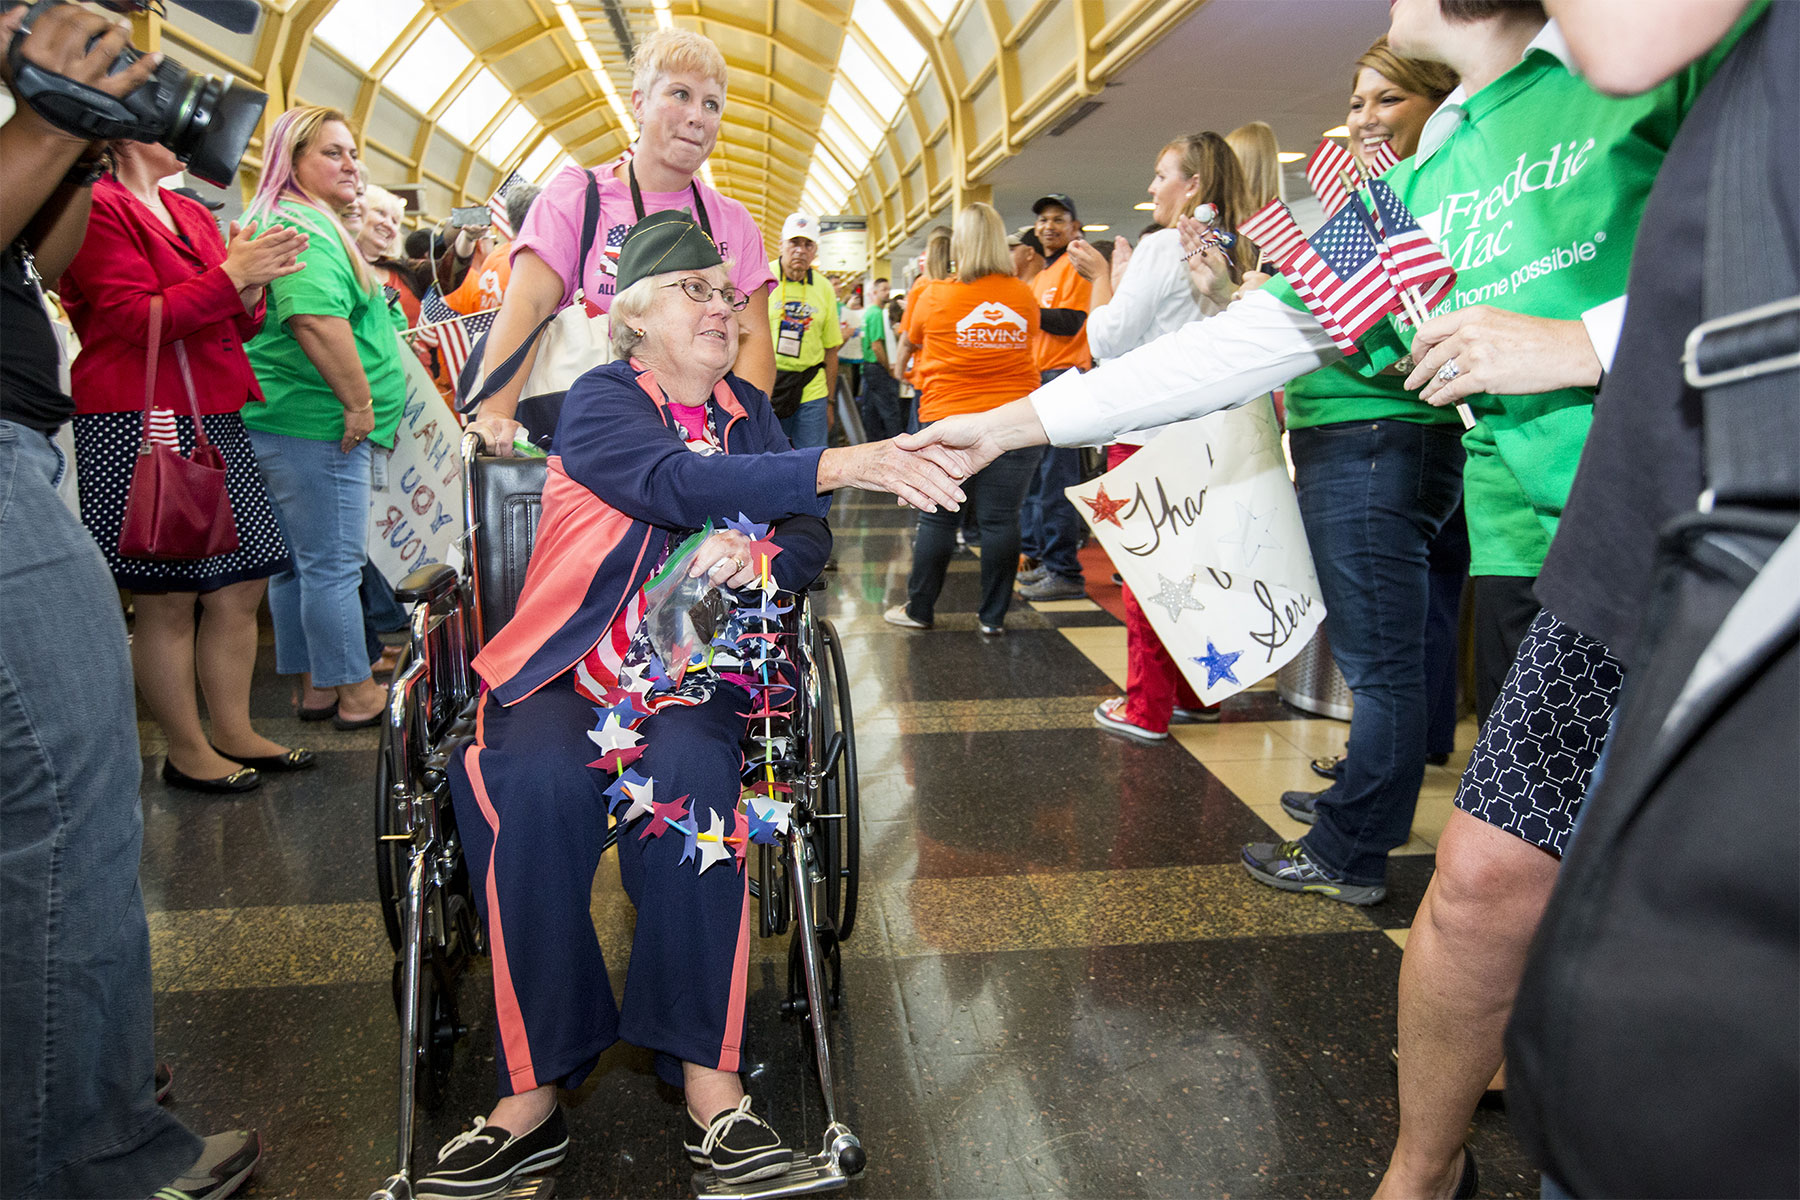 A veteran shakes the hand of one of over 400 supporters who greeted the first all-female honor flight in the United States Sept. 22, 2015 at Ronald Reagan International Airport in Arlington. Over 75 female veterans from World War II, the Korean War and the Vietnam War were in attendance, as well as 75 escorts, who were also female veterans or active-duty military. (U.S. Army/Nell King)